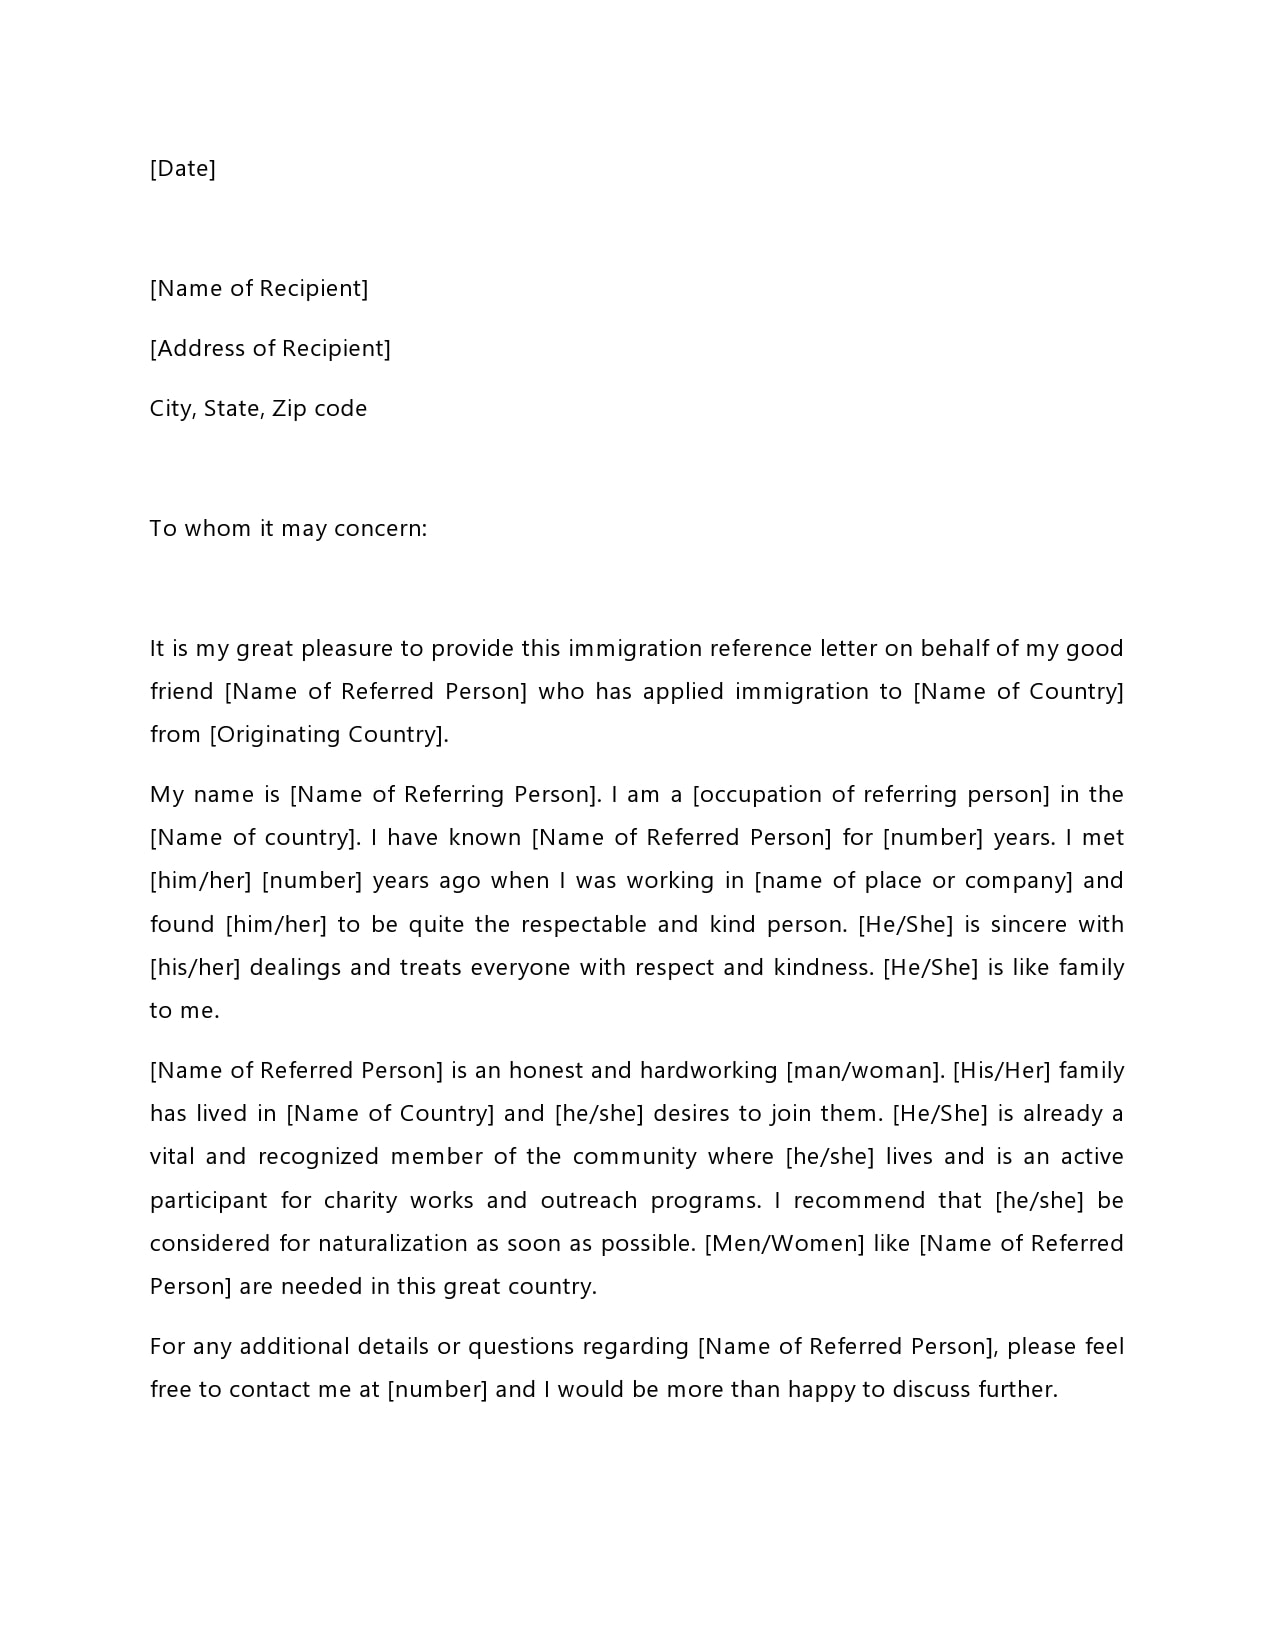 Character Reference Letter For Immigration : character, reference, letter, immigration, Reference, Letter, Immigration, Samples, TemplateArchive